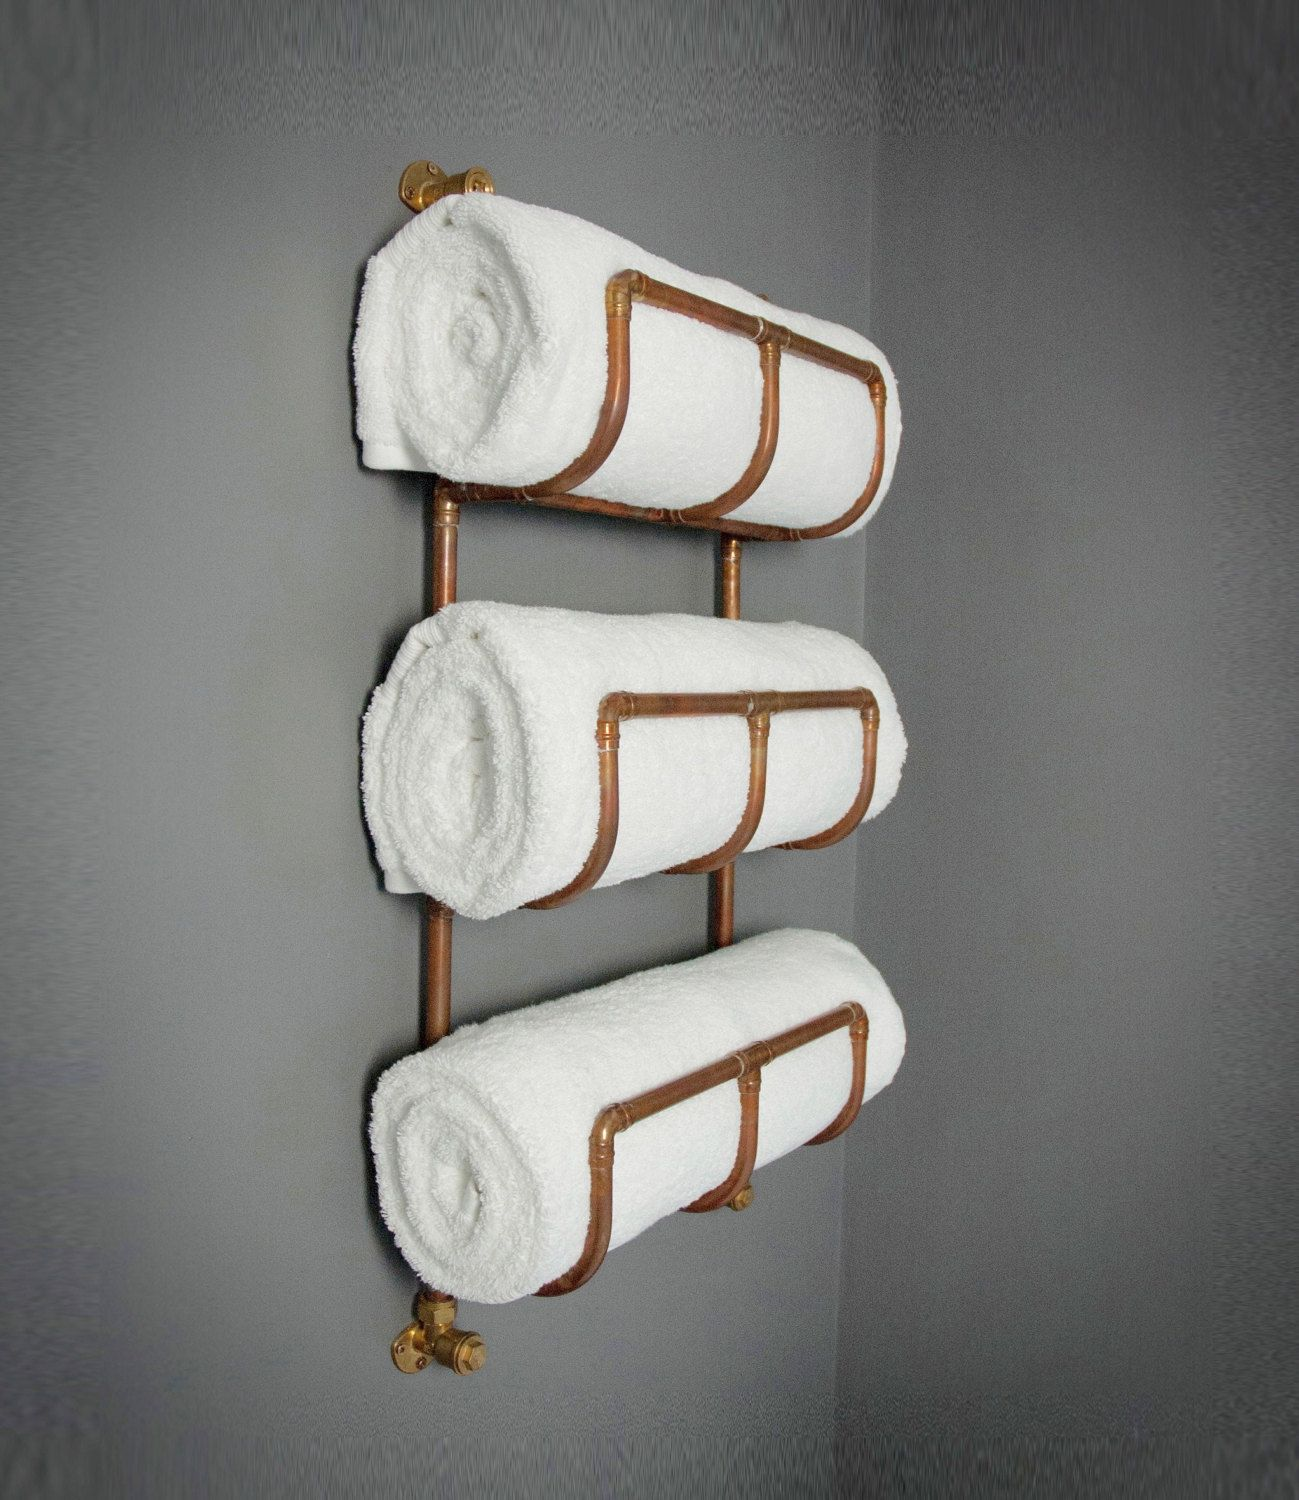 17 Best images about Virginia Beach Bathroom Remodeling  Heated Towel Racks  on Pinterest   Heated towel rail  Copper and Towel warmer. 17 Best images about Virginia Beach Bathroom Remodeling  Heated